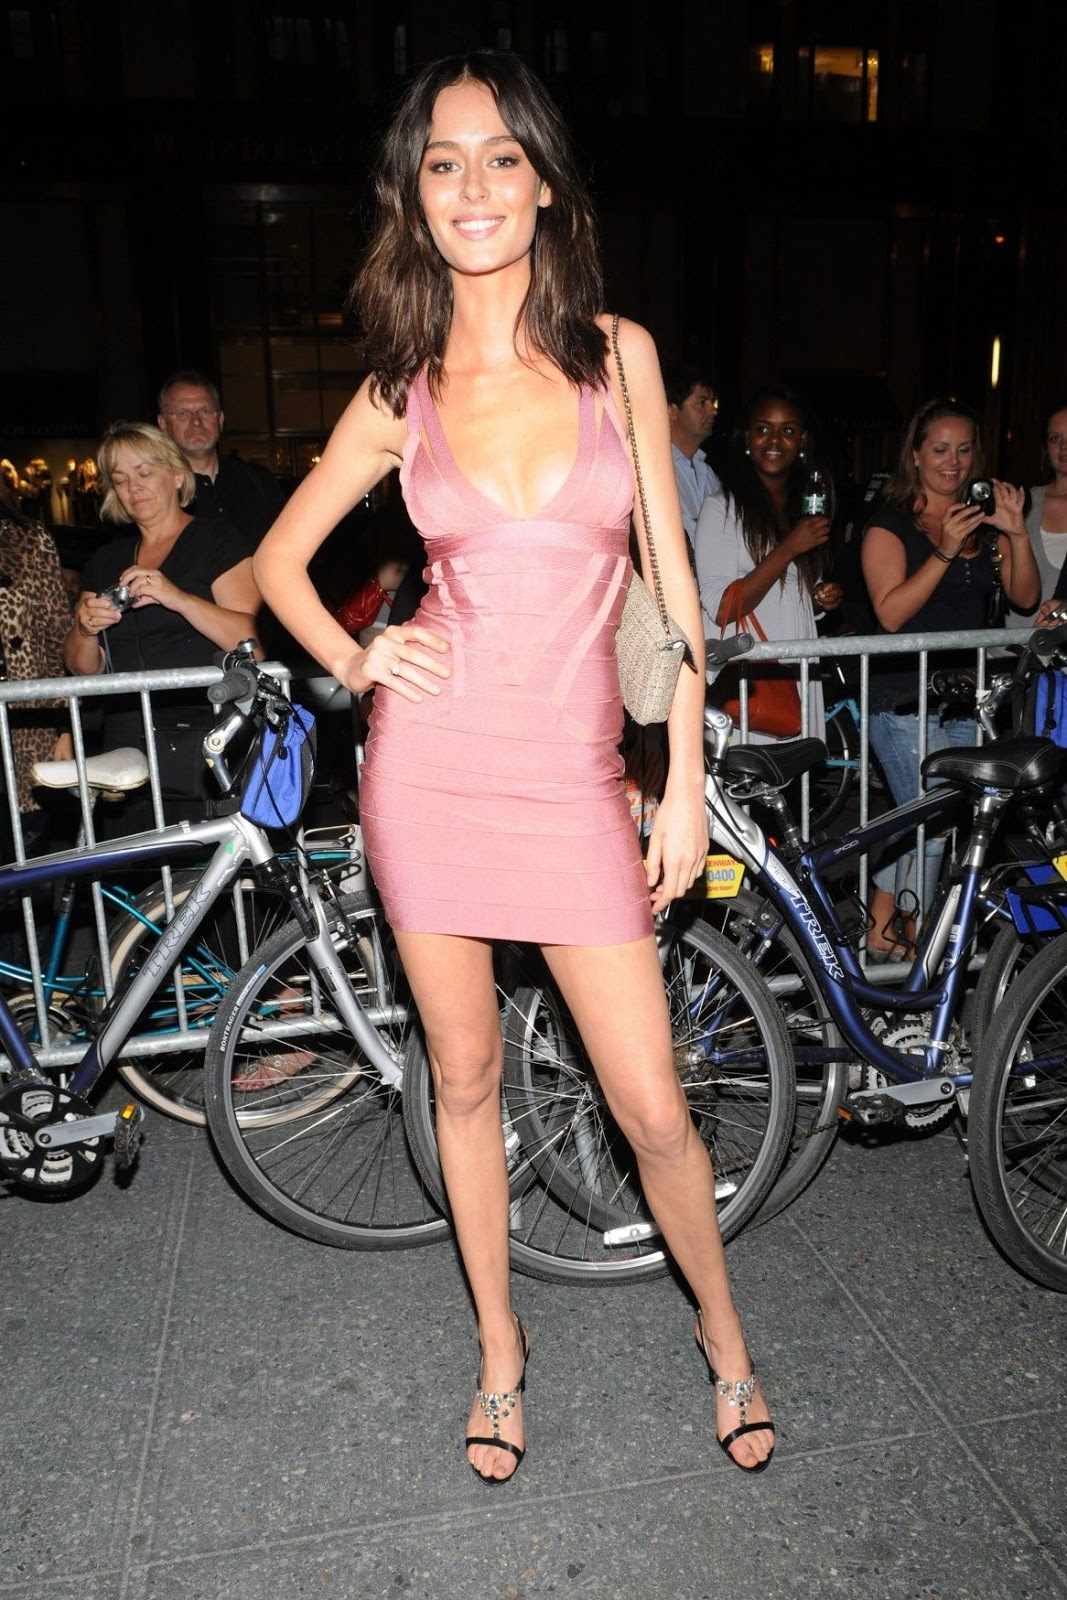 Feet Nicole Trunfio naked (27 foto and video), Pussy, Paparazzi, Twitter, underwear 2019